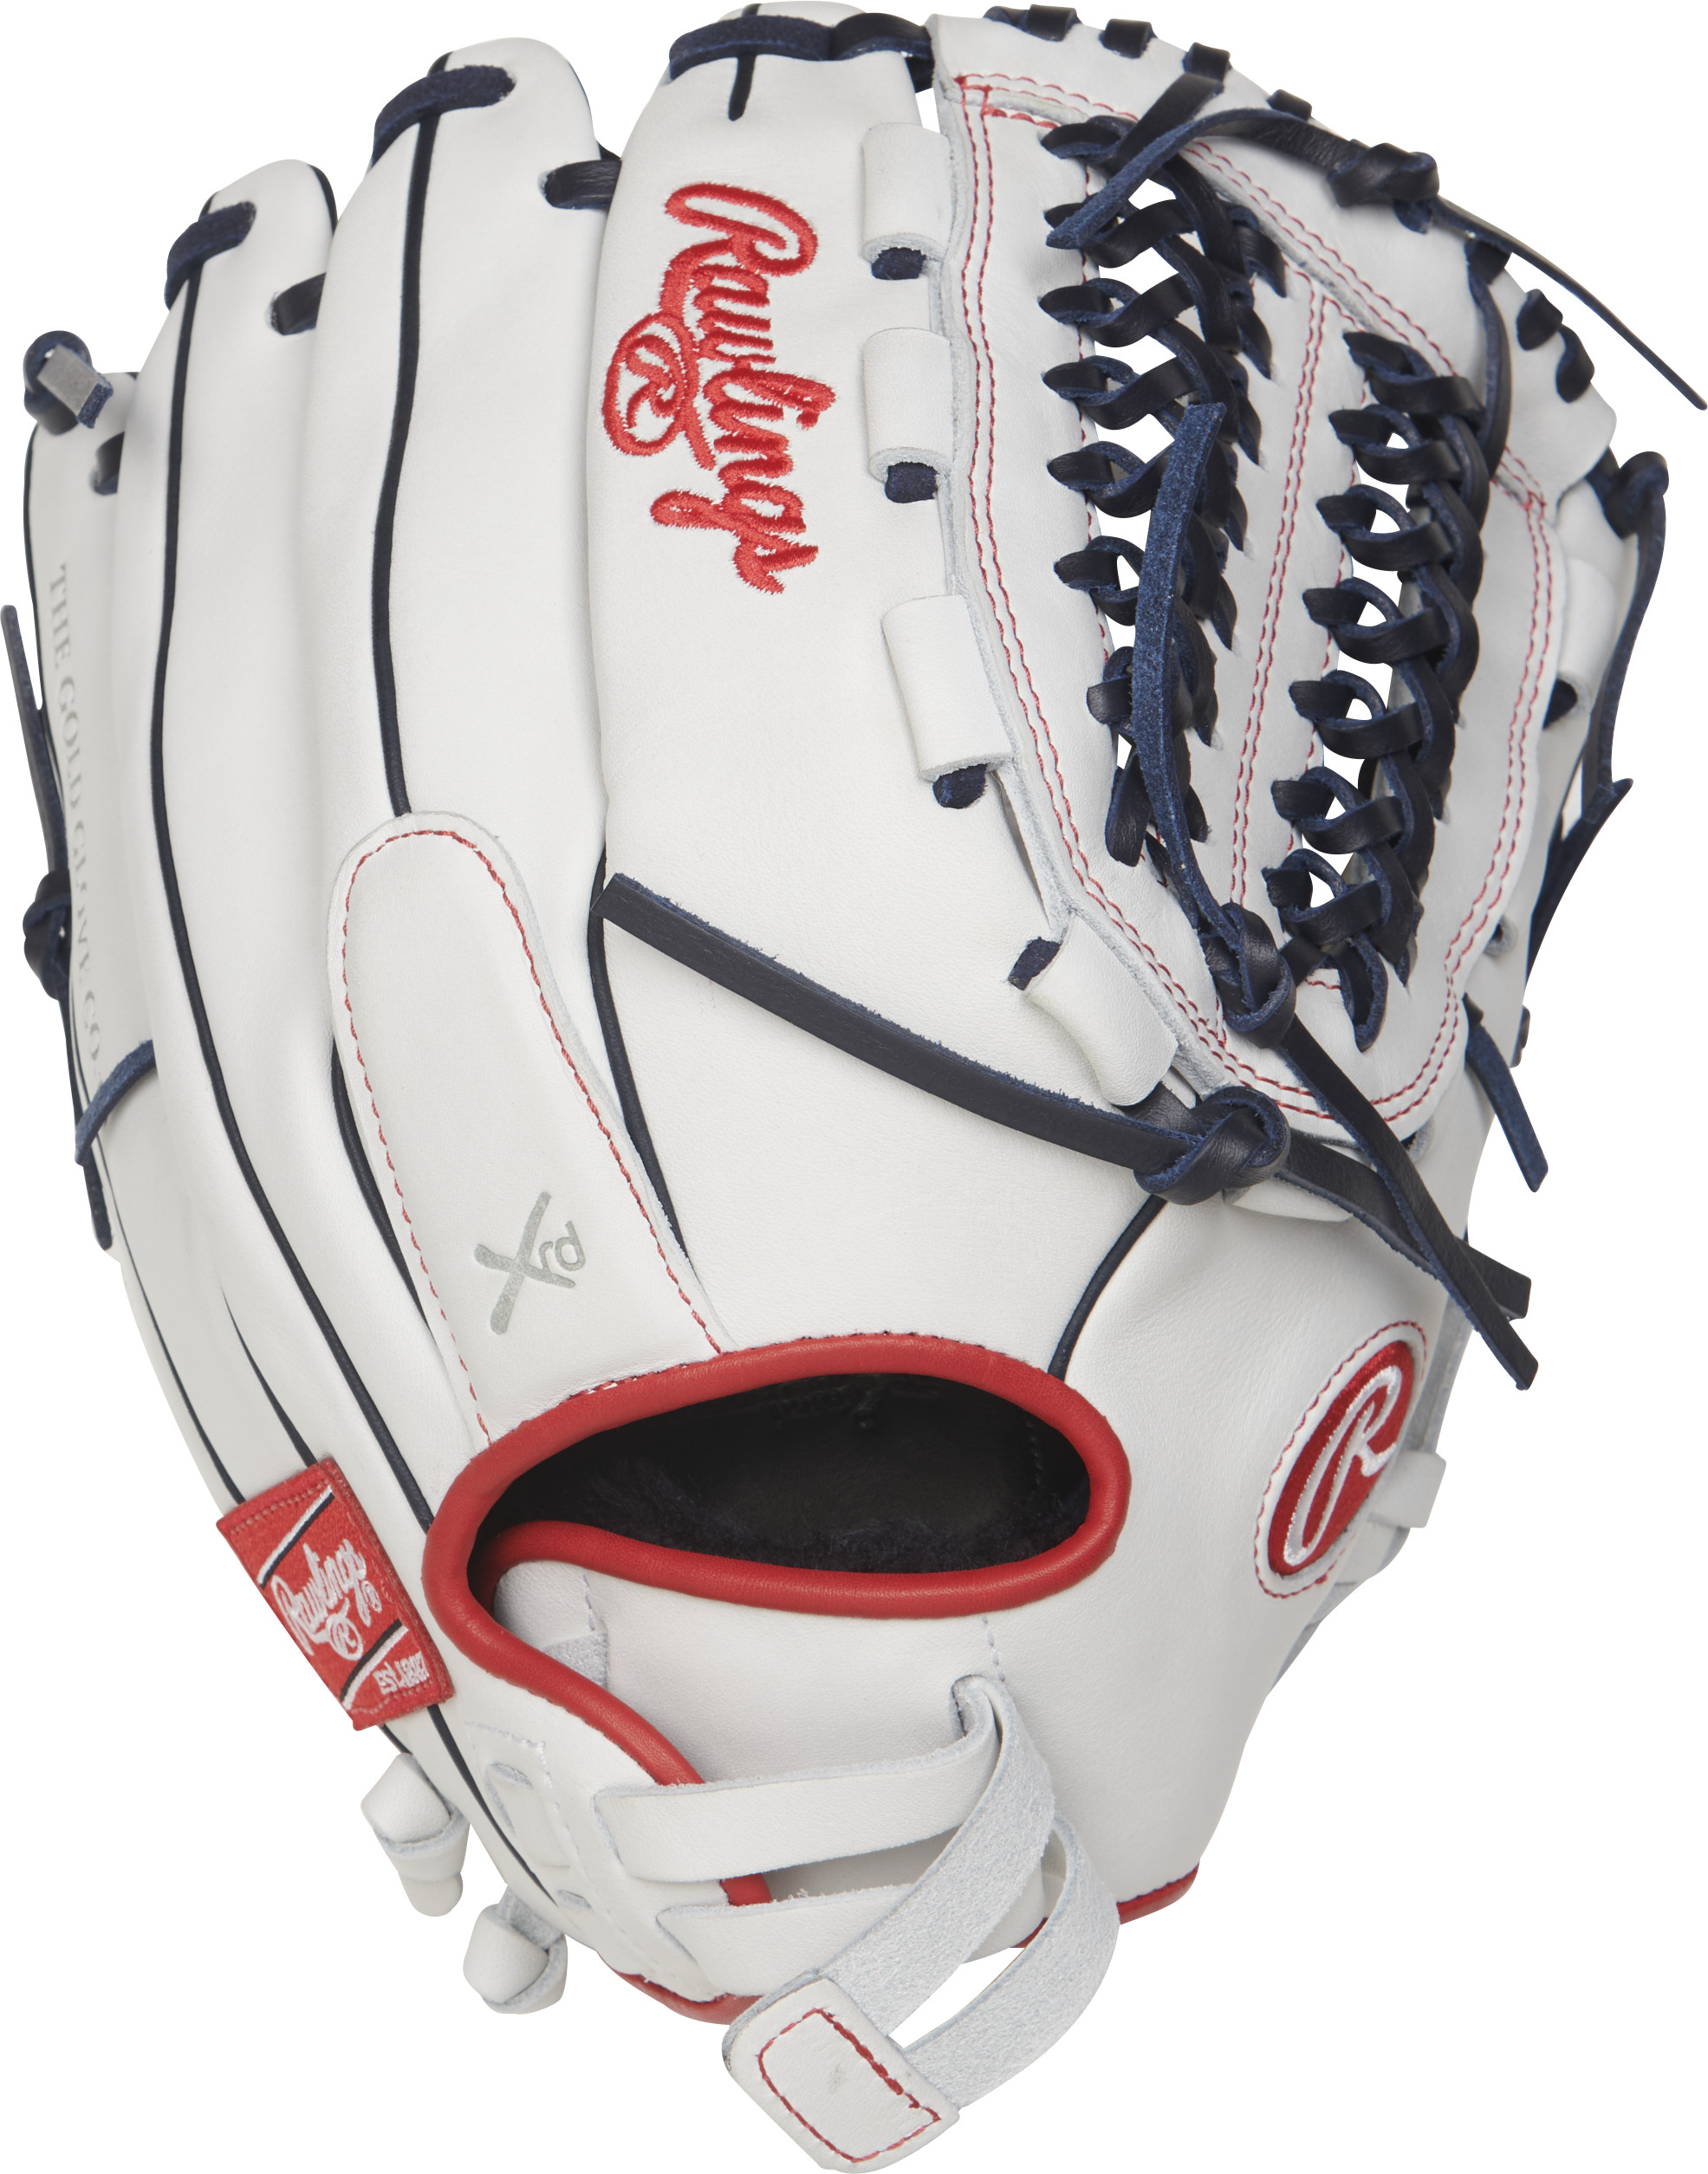 http://www.bestbatdeals.com/images/gloves/rawlings/RLA125FS-15WNS-2.jpg